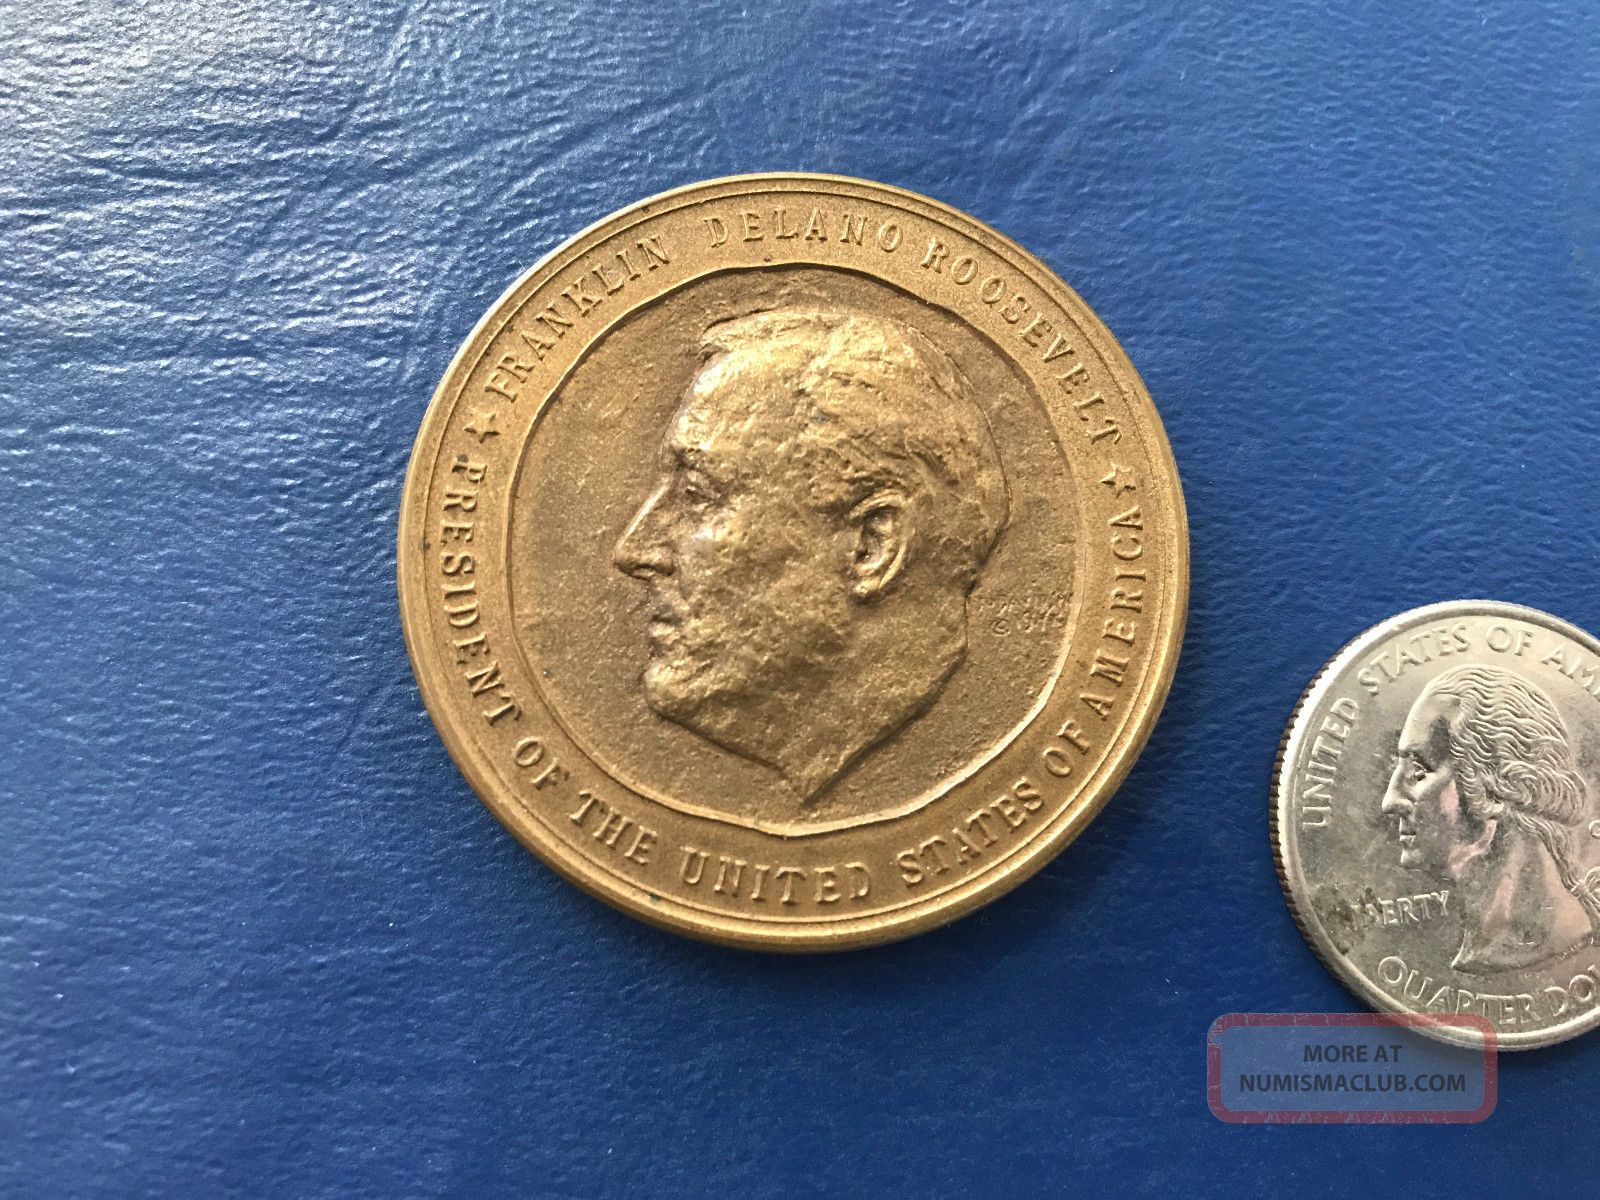 1941 Franklin Roosevelt Official Inaugural Medal Bronze Very Scarce Type 1 Fdr Exonumia photo